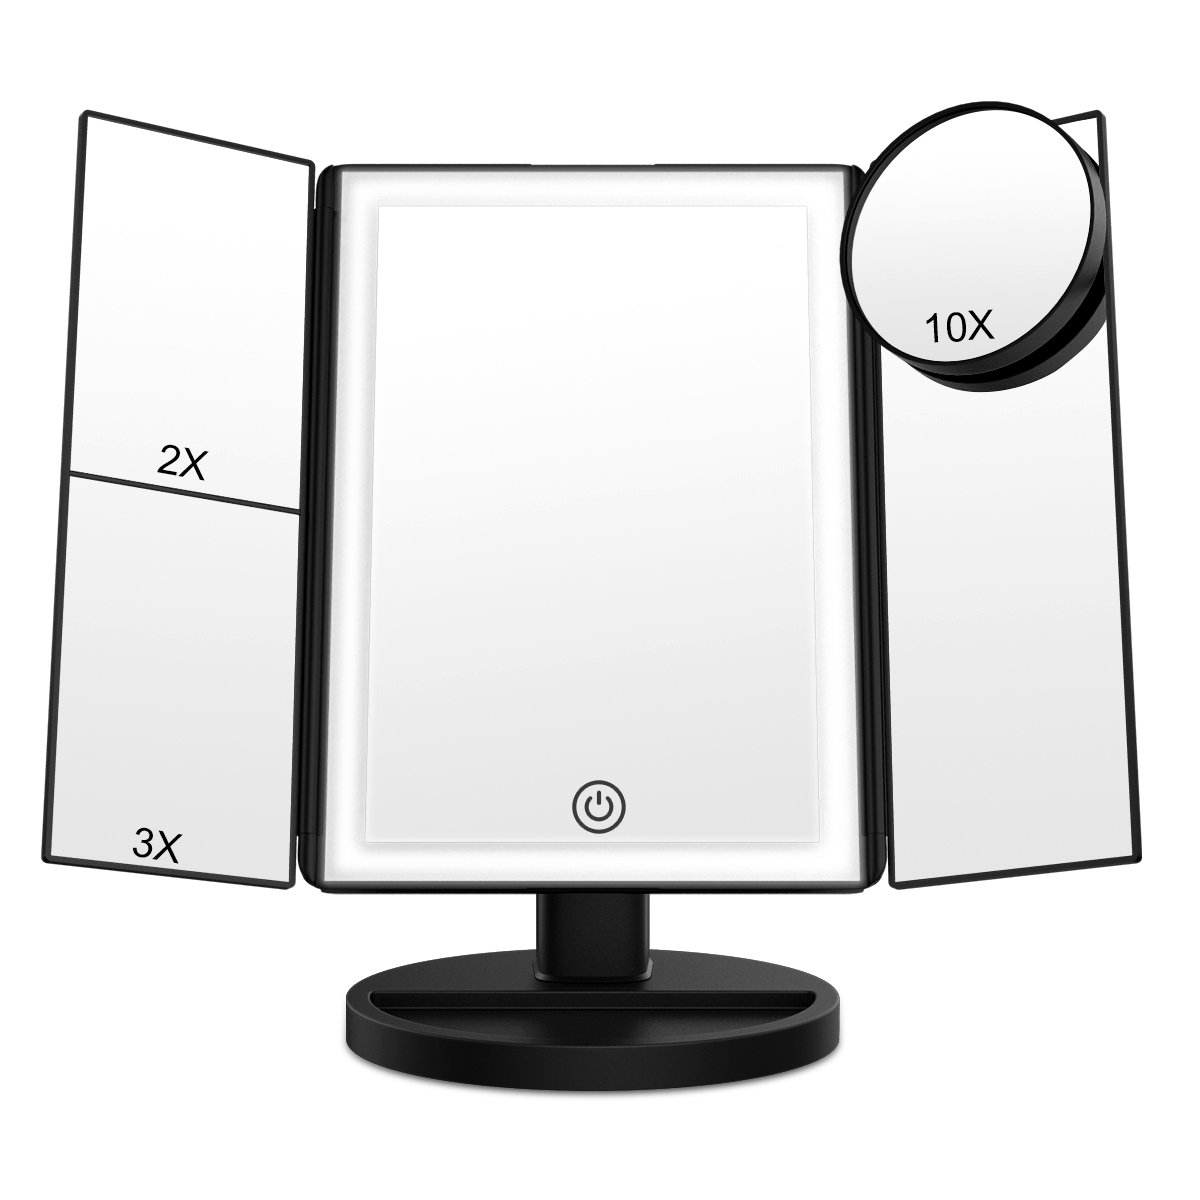 BearMoo Makeup Vanity Mirror with 36 LED Lights, Touch Screen 3X 2X Magnification Lighted Makeup Mirror with Detachable 10X Magnifying Spot Mirror, 180°Adjustable Rotation, Countertop Cosmetic Mirror